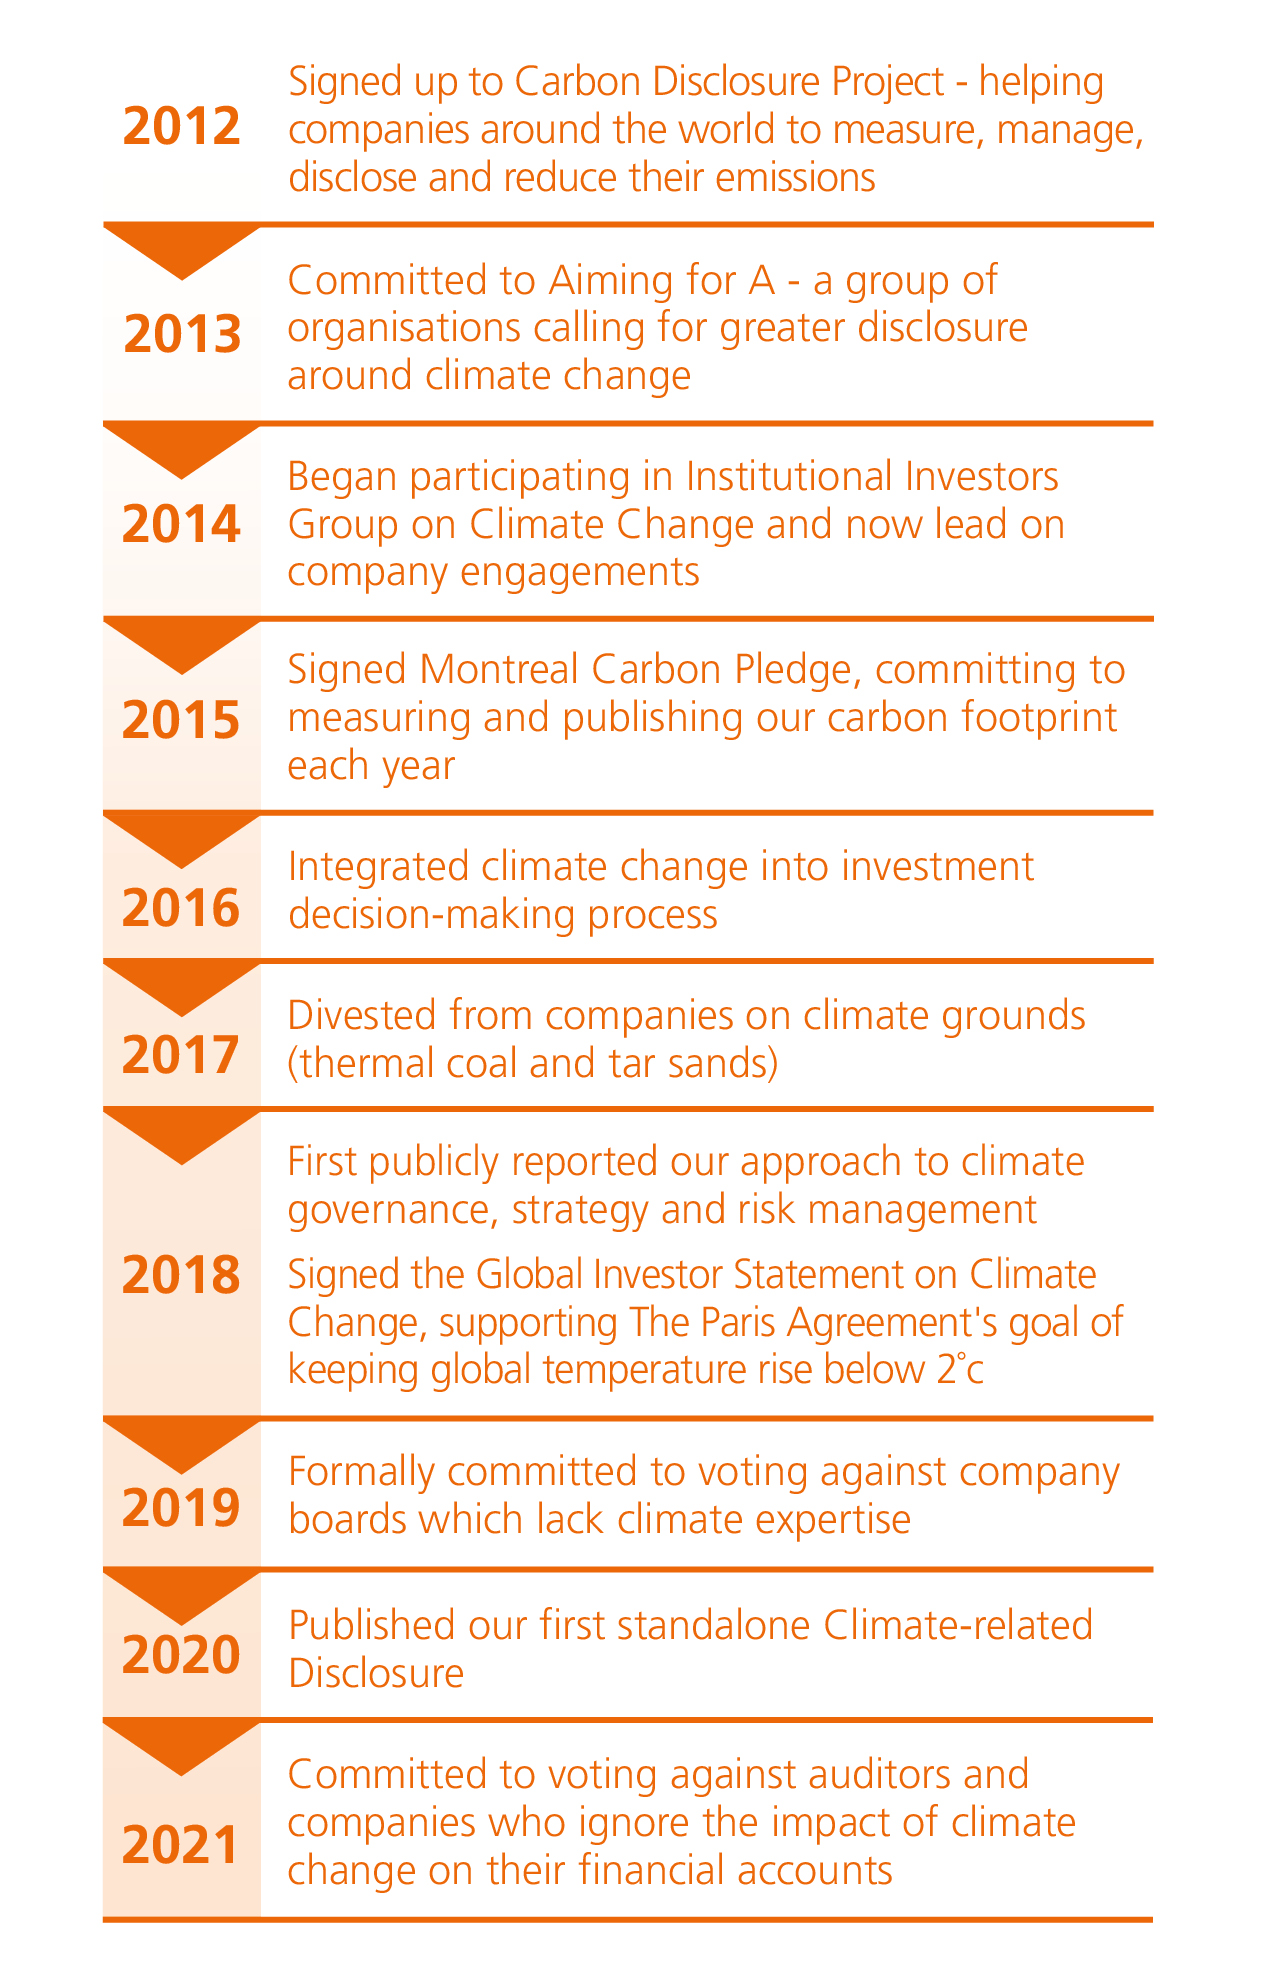 A list of our climate change actions by year